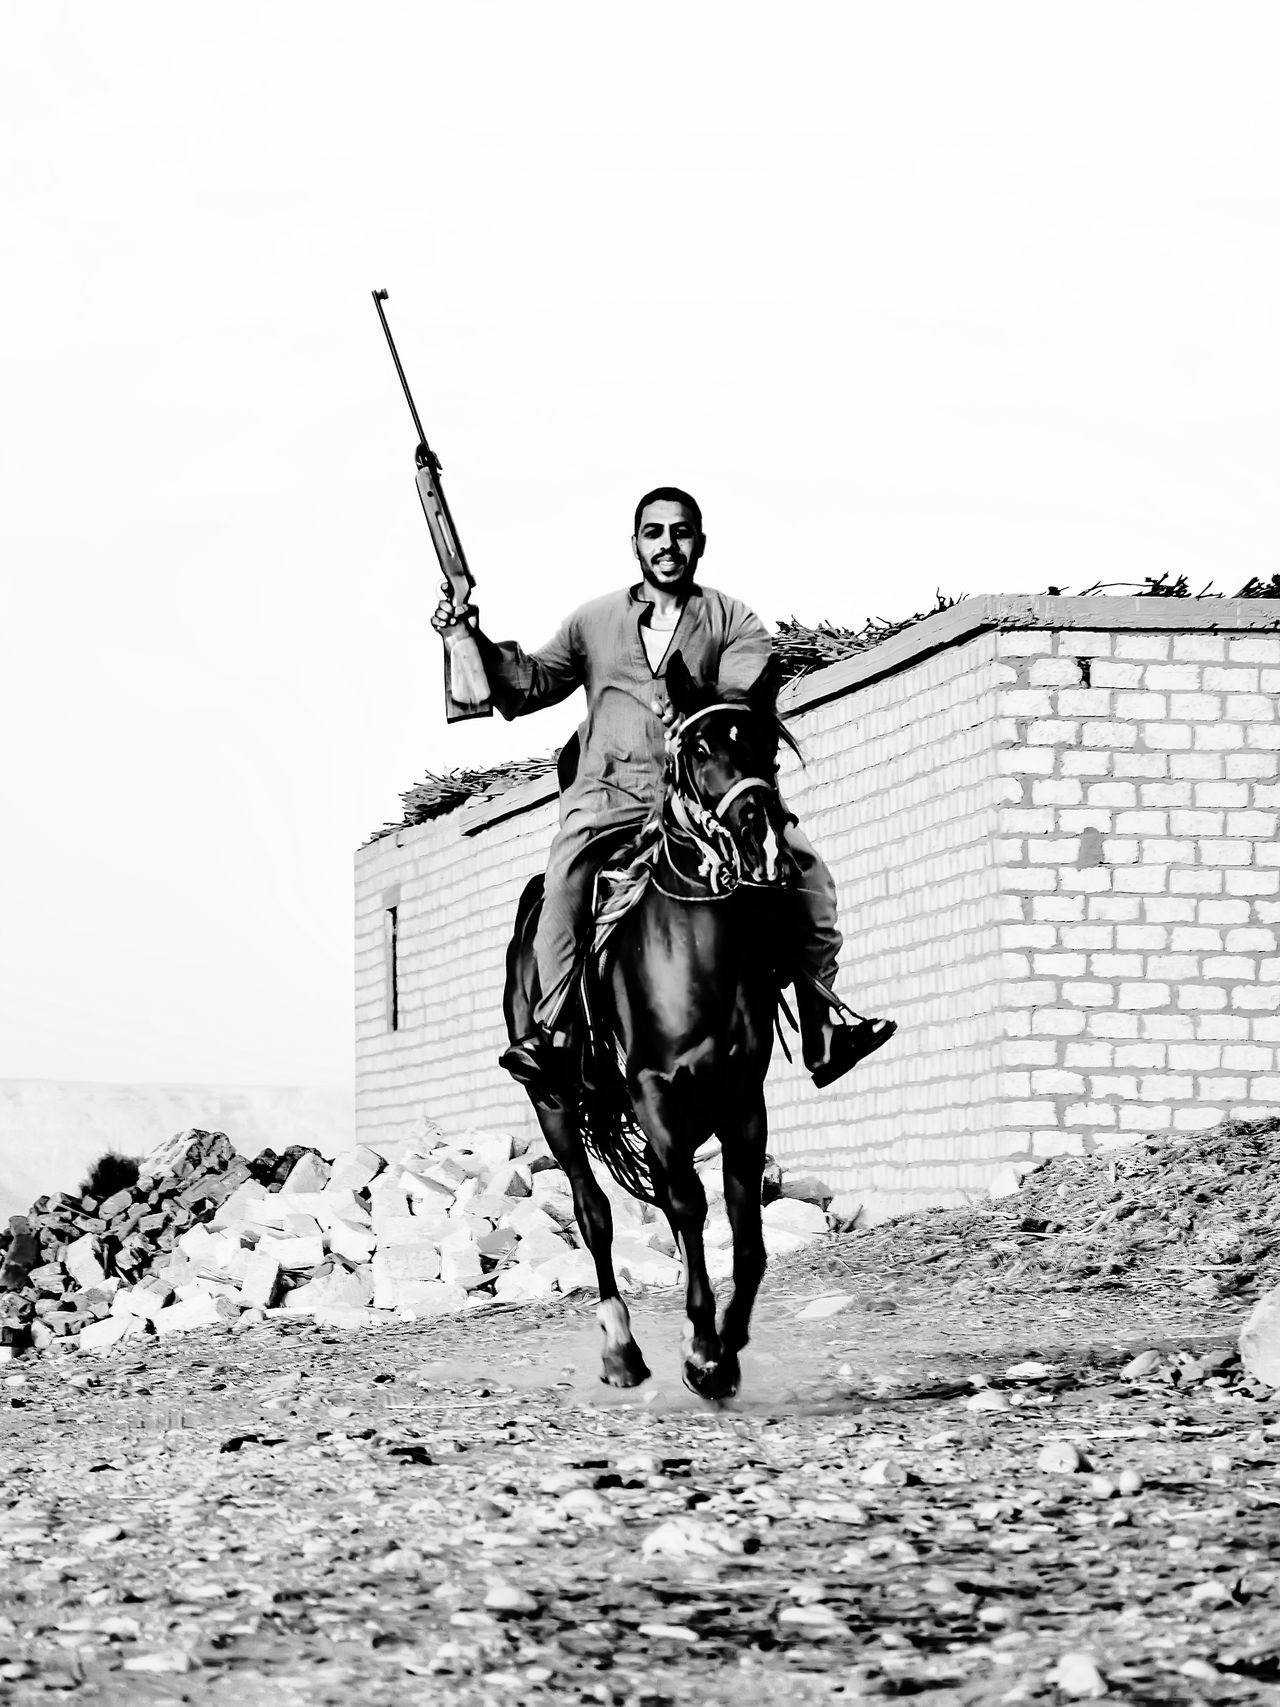 riding horses and hunting at upper egypt Black And White Blackandwhite Carefree Casual Clothing Day EyeEm Animal Lover Front View Full Length Gun Horse Hunting Long Hair Looking At Camera Outdoors People And Places Person Portrait Riding Arabian Horse Young Adult My Year My View Miles Away The Portraitist - 2017 EyeEm Awards The Photojournalist - 2017 EyeEm Awards The Street Photographer - 2017 EyeEm Awards Let's Go. Together. Sommergefühle